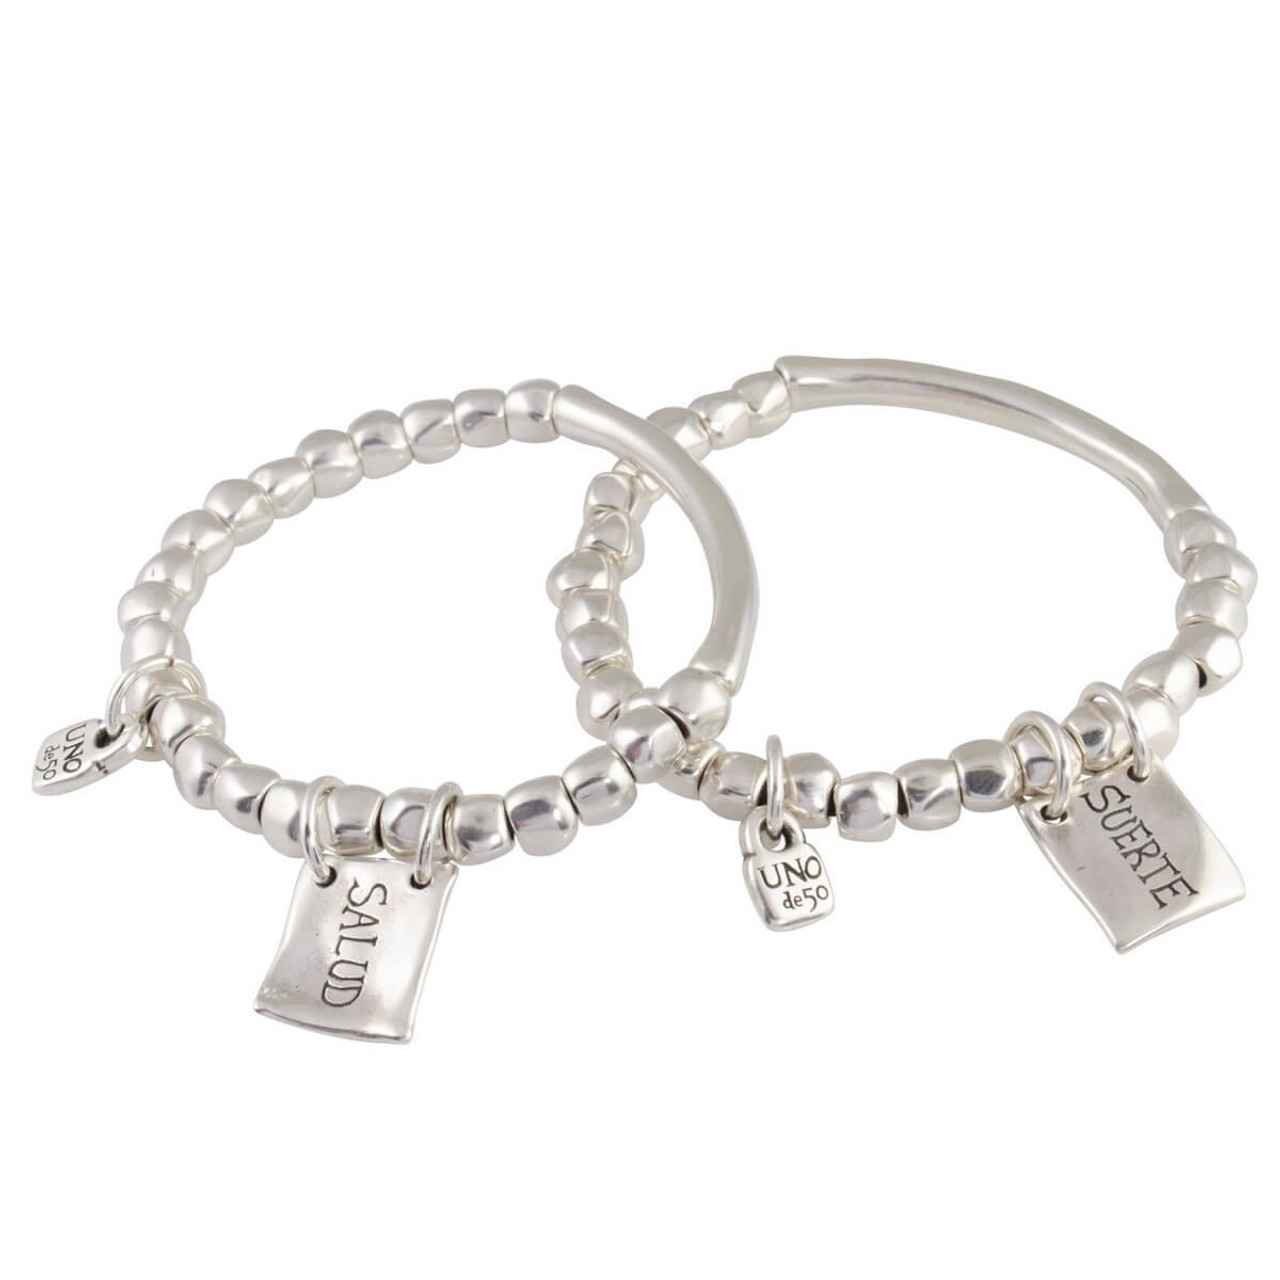 healthy and lucky bracelet set